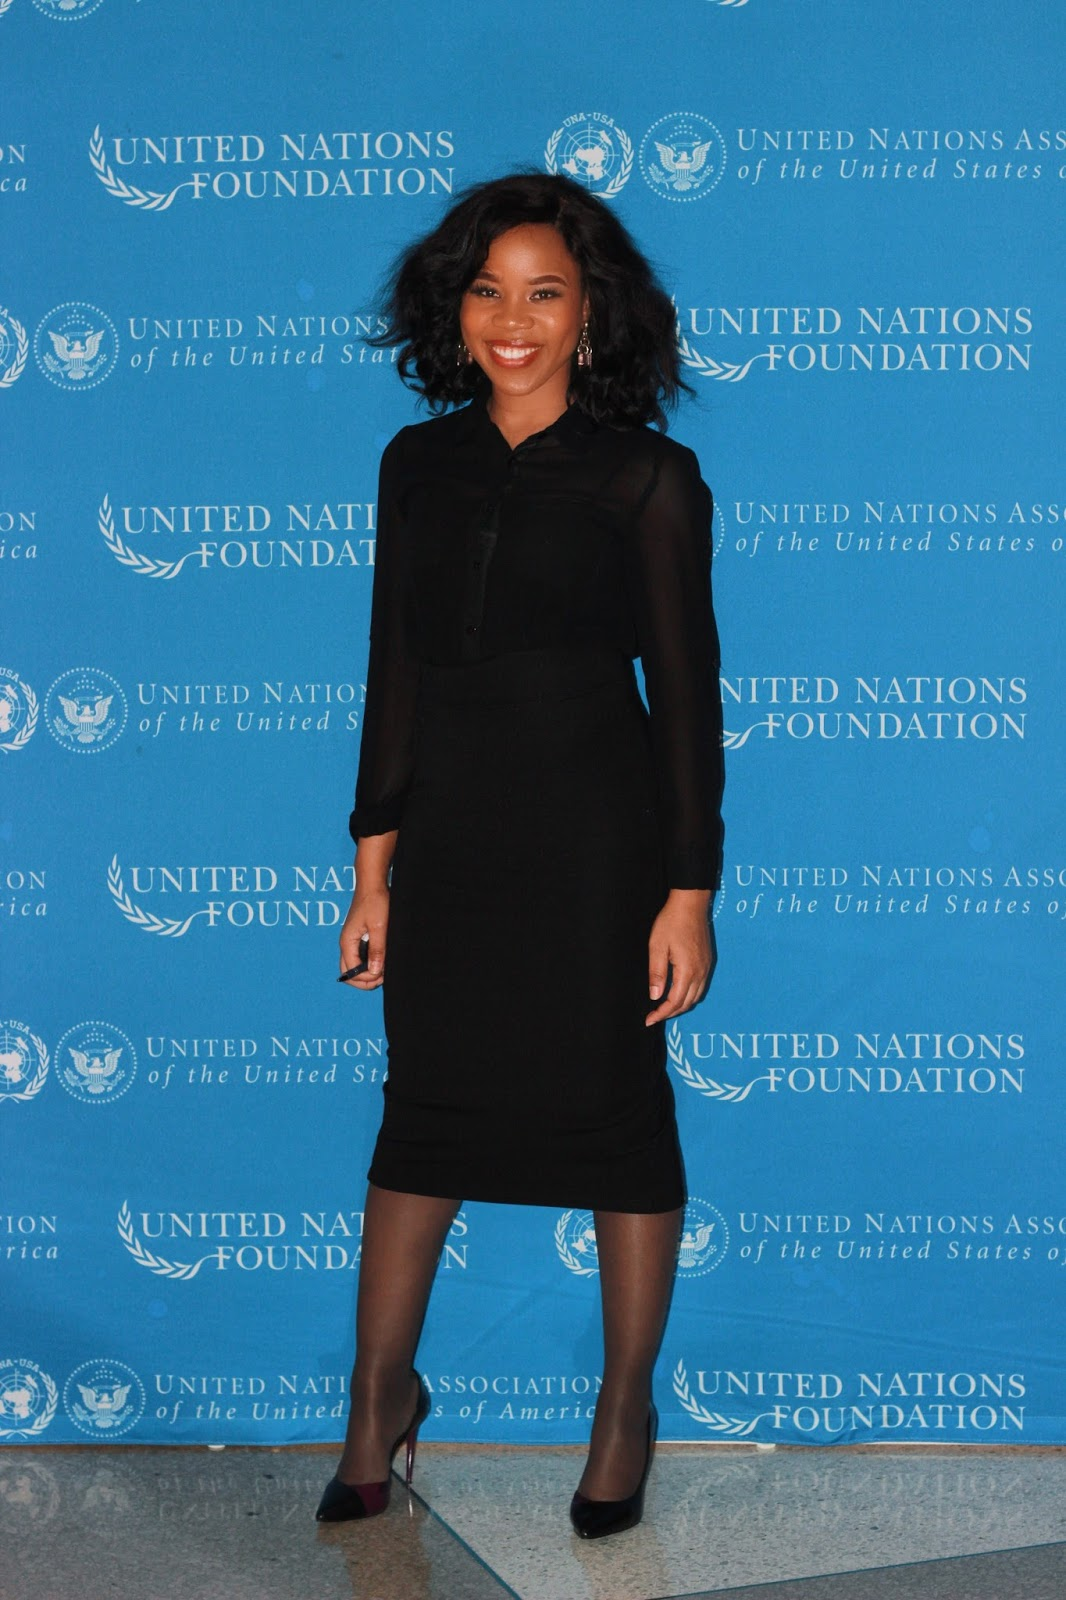 UNITED NATIONS GLOBAL SUMMIT (MY TAKE HOME POINTS)